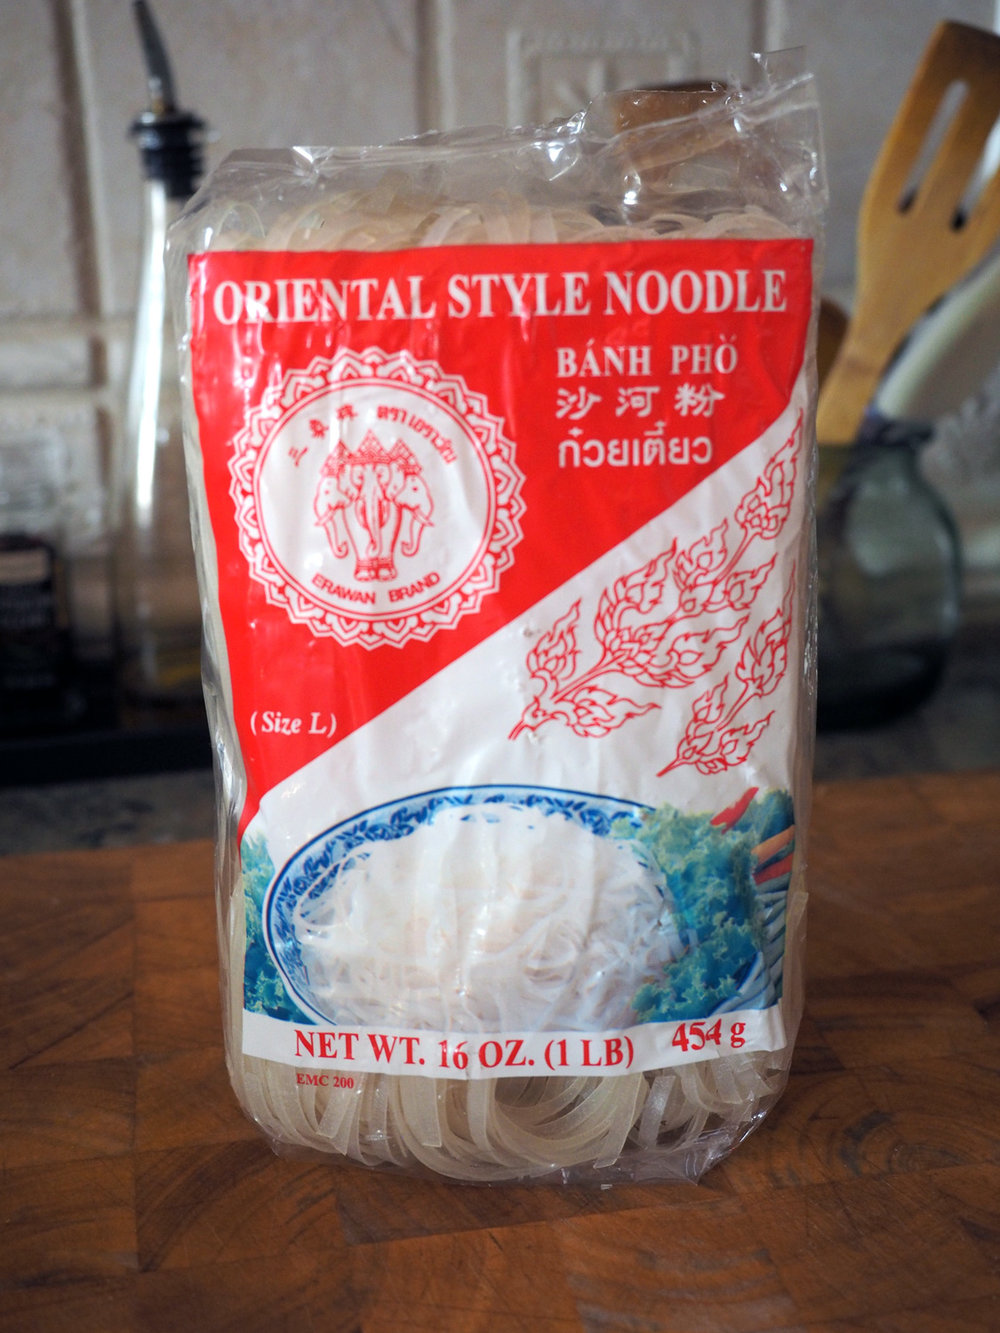 The rice noodles I just had to grab. I love me some noodles.